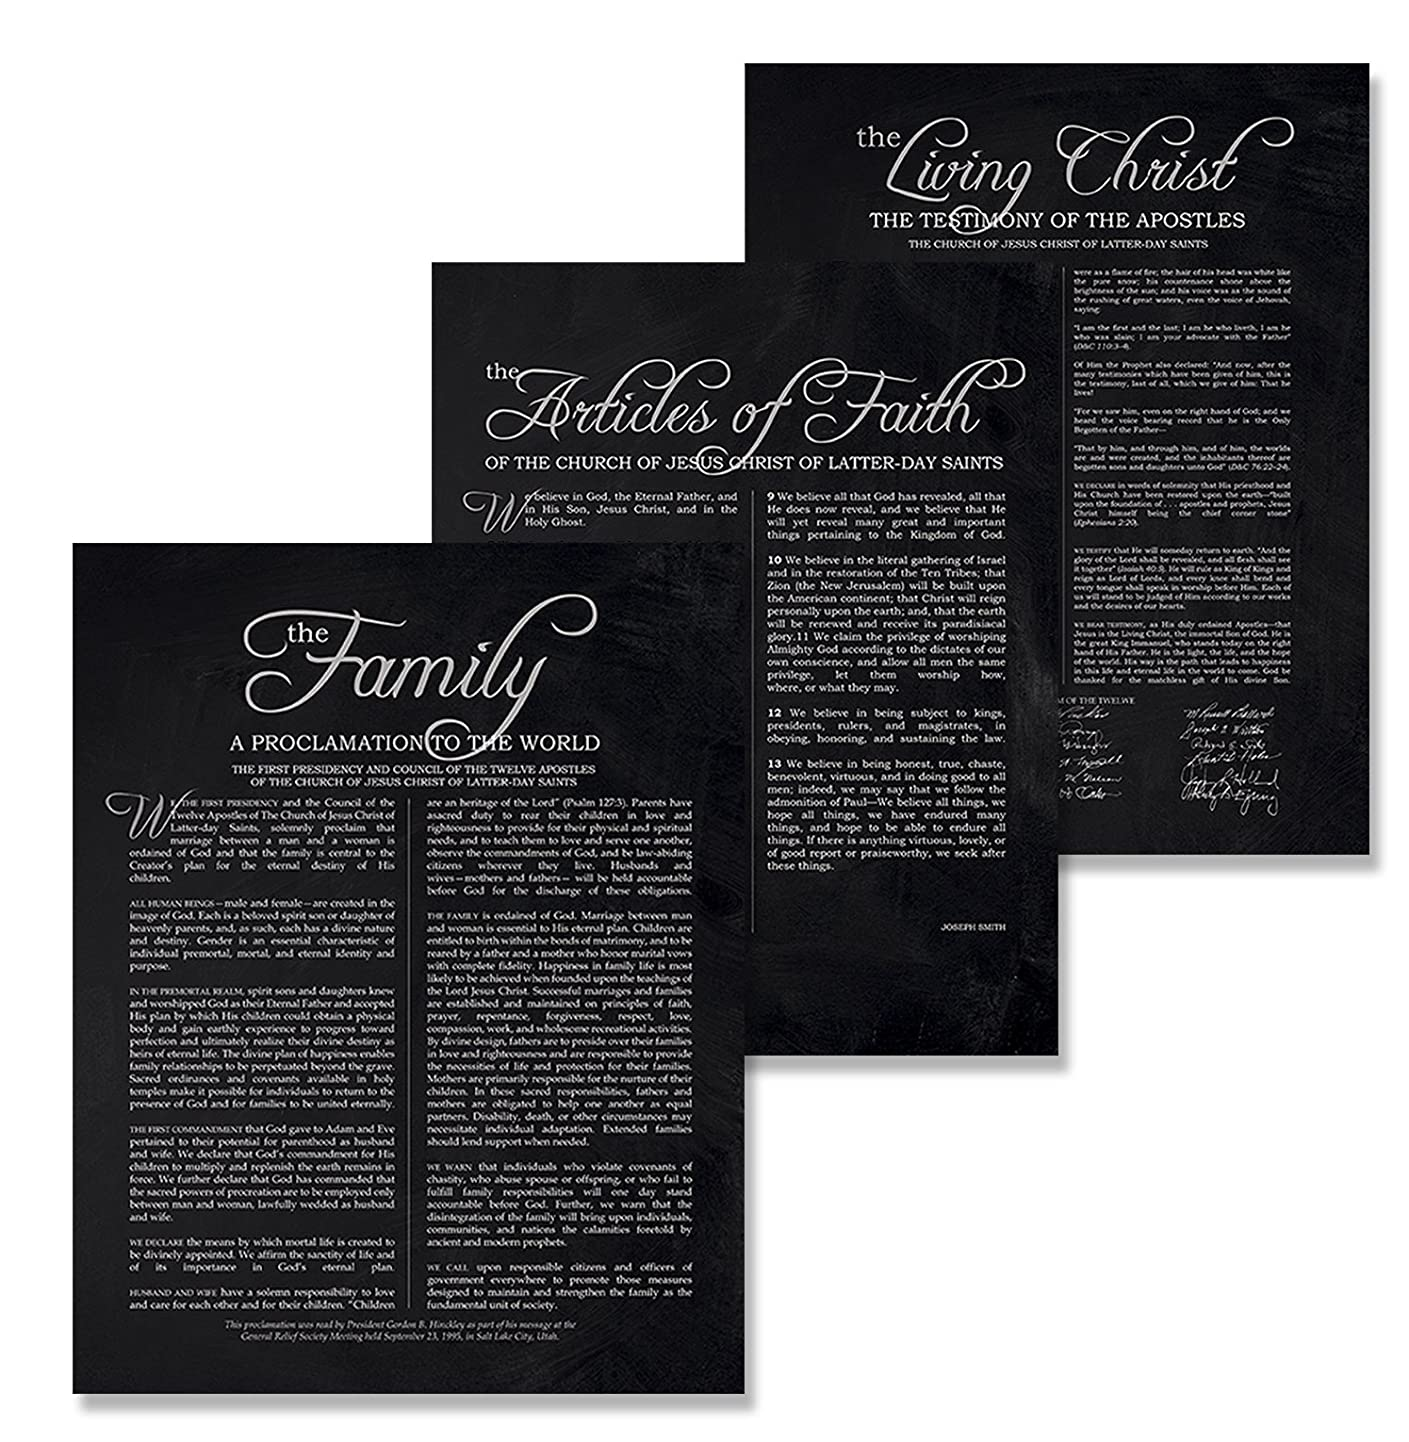 11x14 LDS Prints - Set of 3 Mormon Art Posters//Family Proclamation//The Living Christ//The Articles of Faith//Lds Presents For Women Men//Wedding//Anniversary//Housewarming//Home sakiffhuxmd1